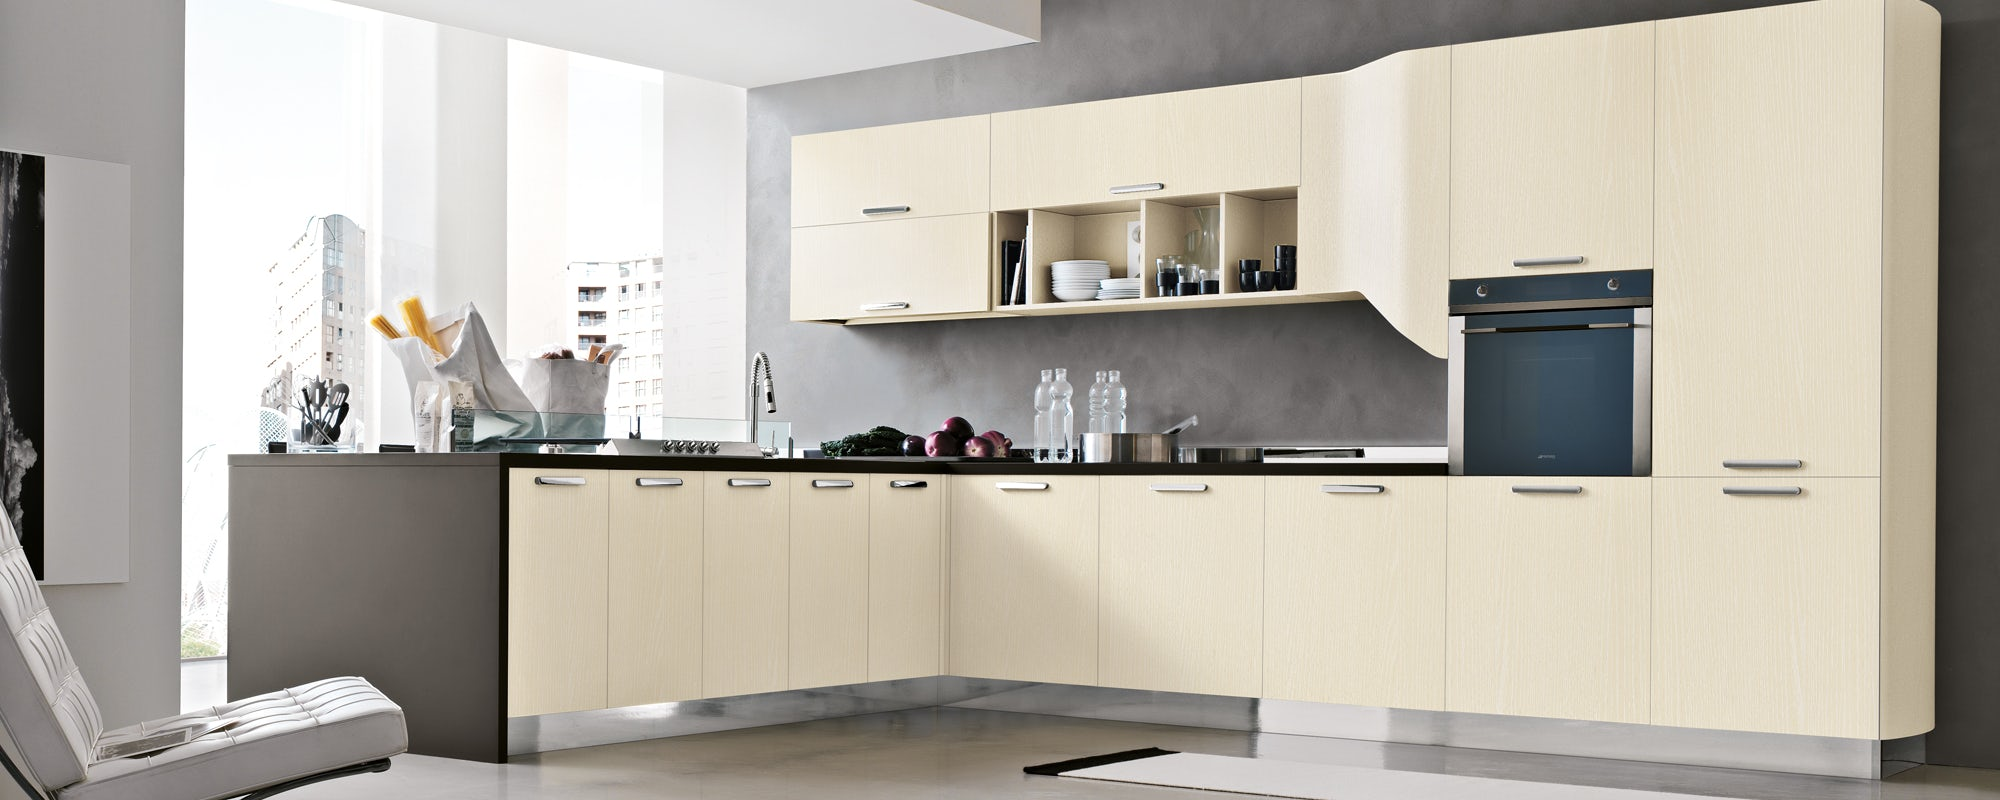 Cucina Stosa Milly Lecce